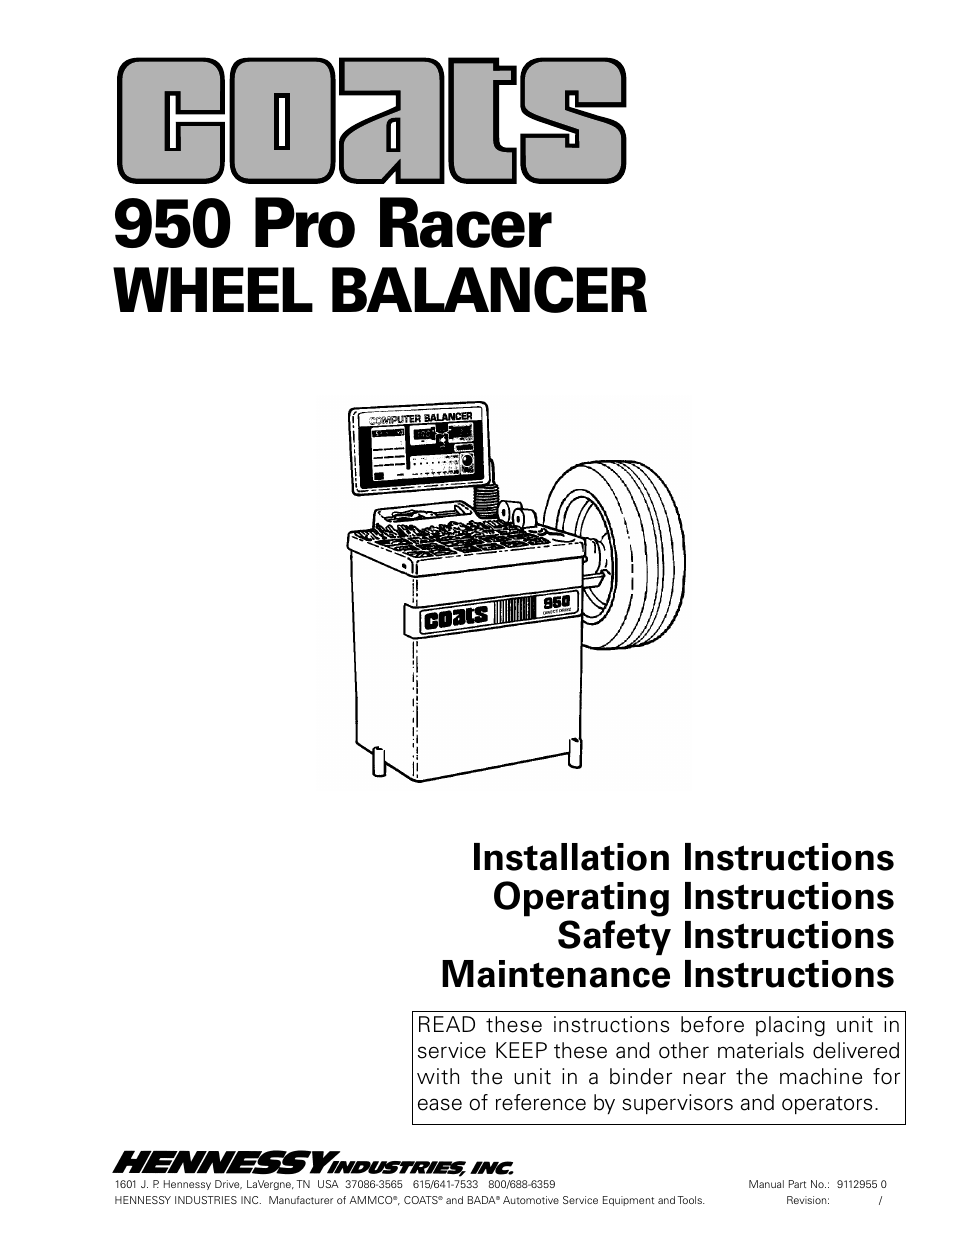 coats 950 pro racer wheel balancer user manual 20 pages rh manualsdir com coats 950 tire balancer parts coats 950 wheel balancer parts list